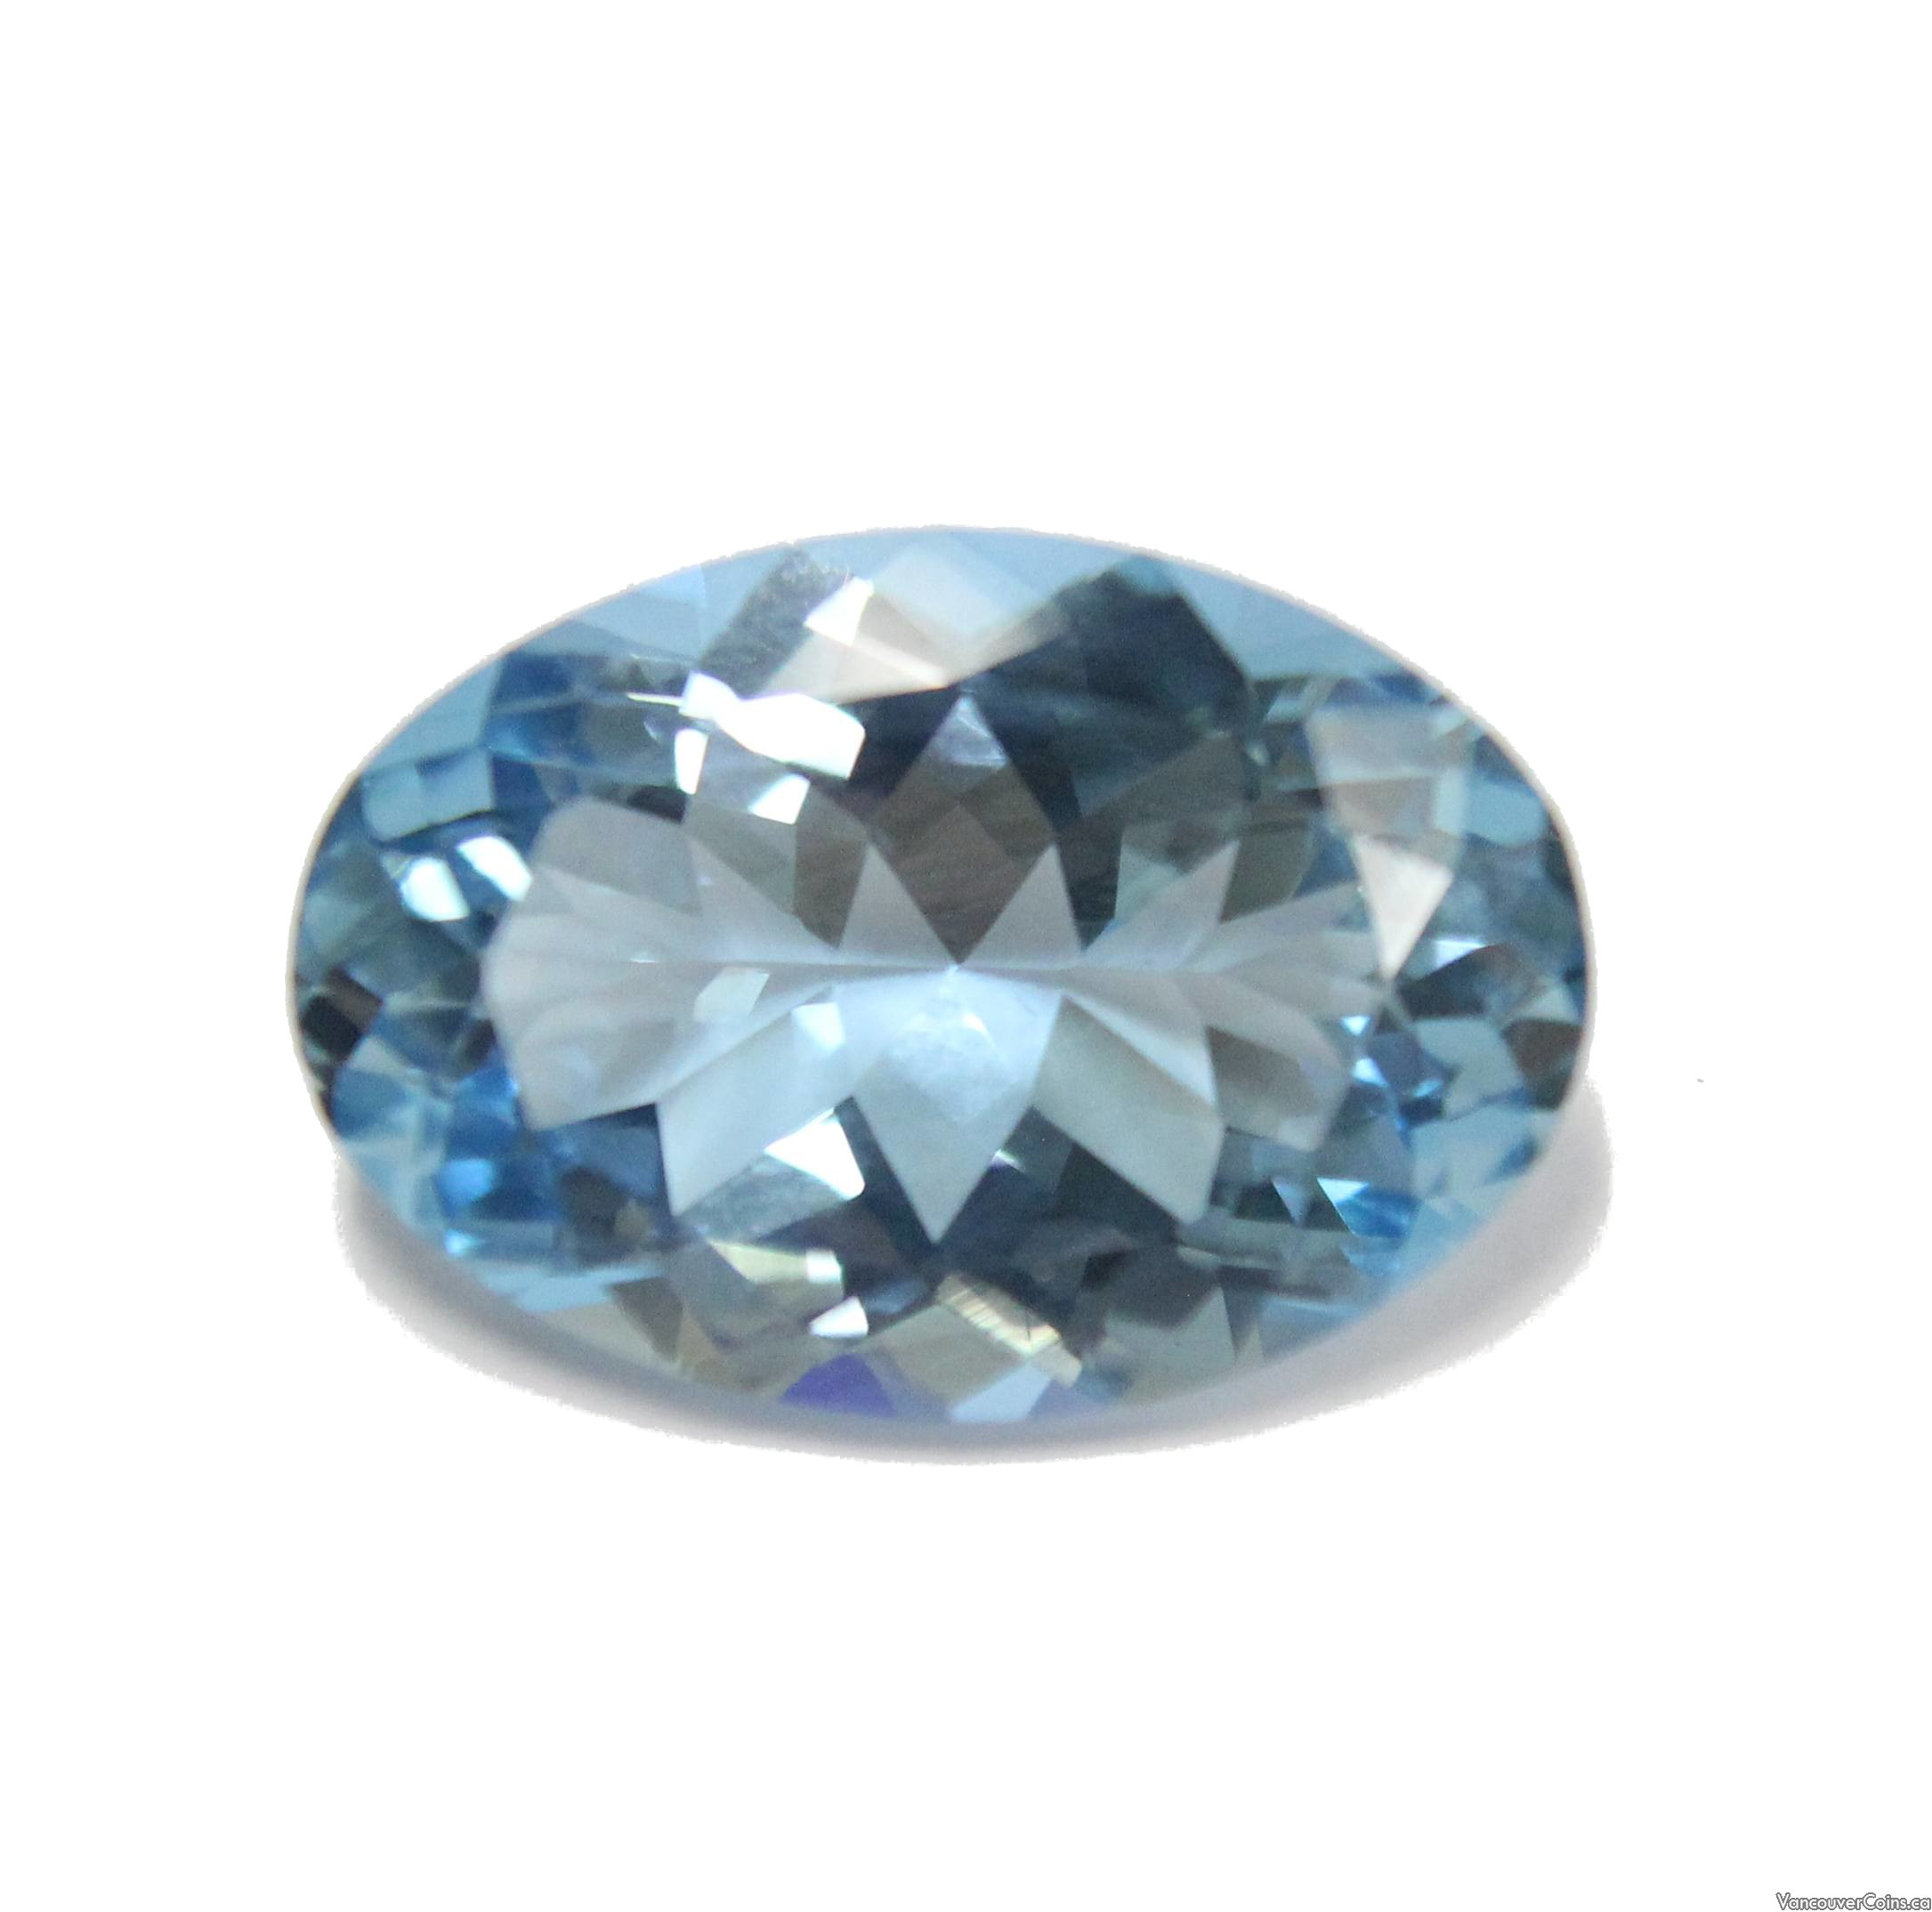 10.31 ct Blue Aquamarine oval natural gemstone with Gem Lab aappraisal $7,300